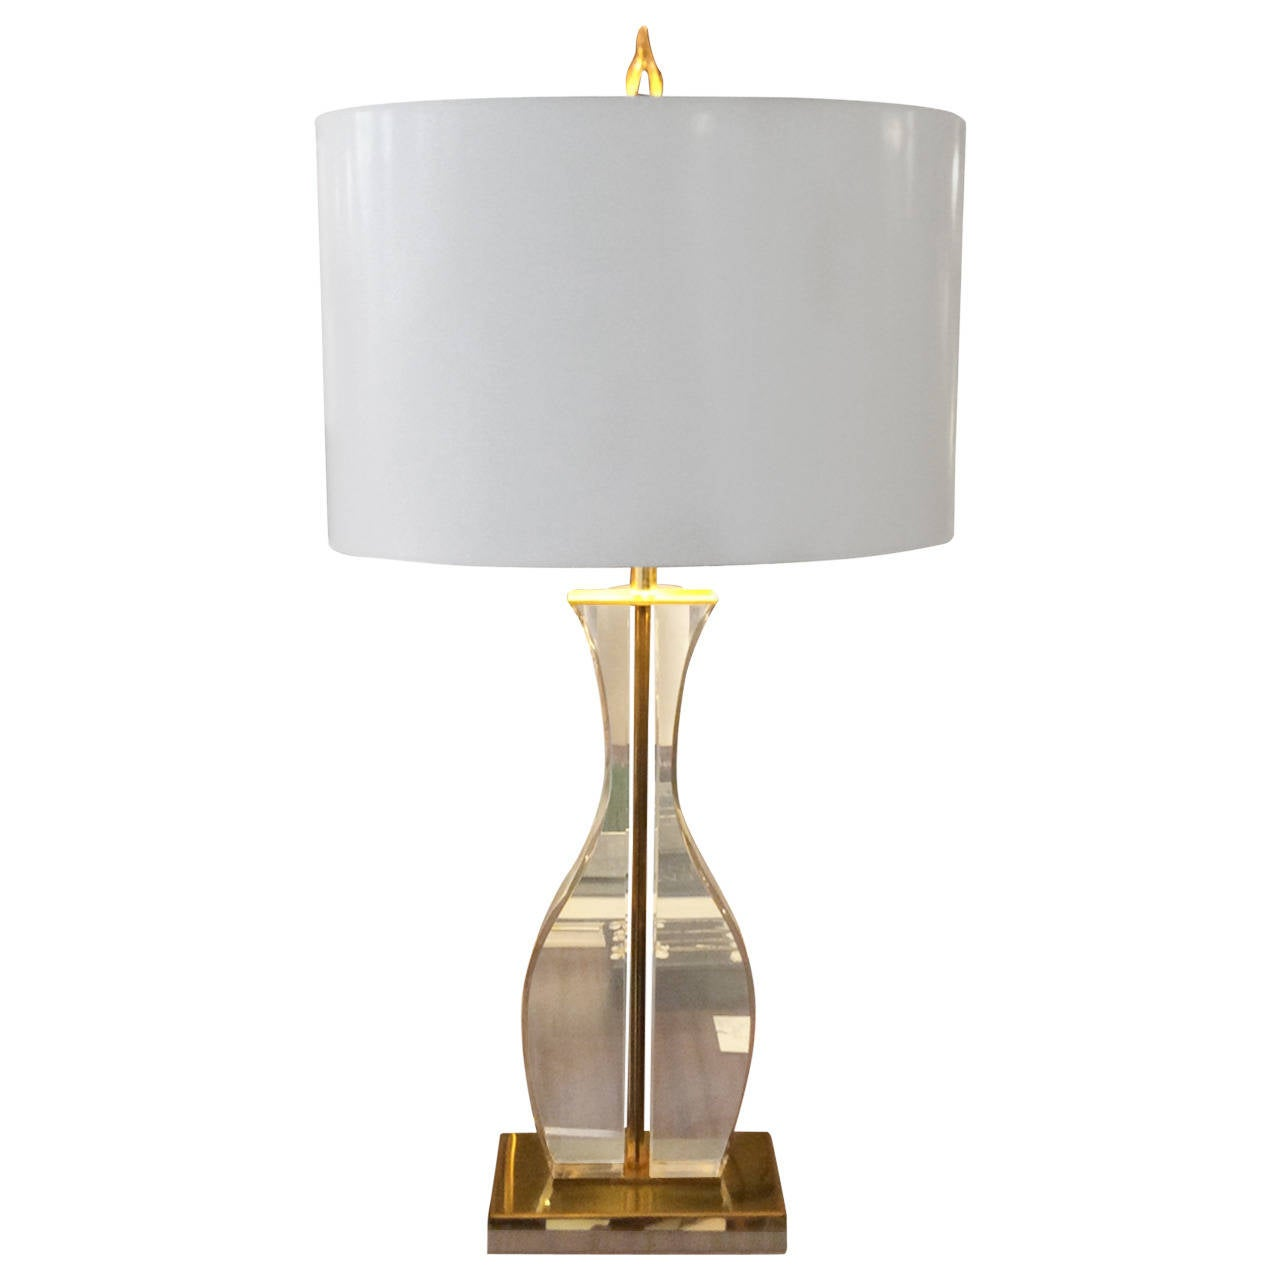 Sculptural Lucite and Brass Table Lamp